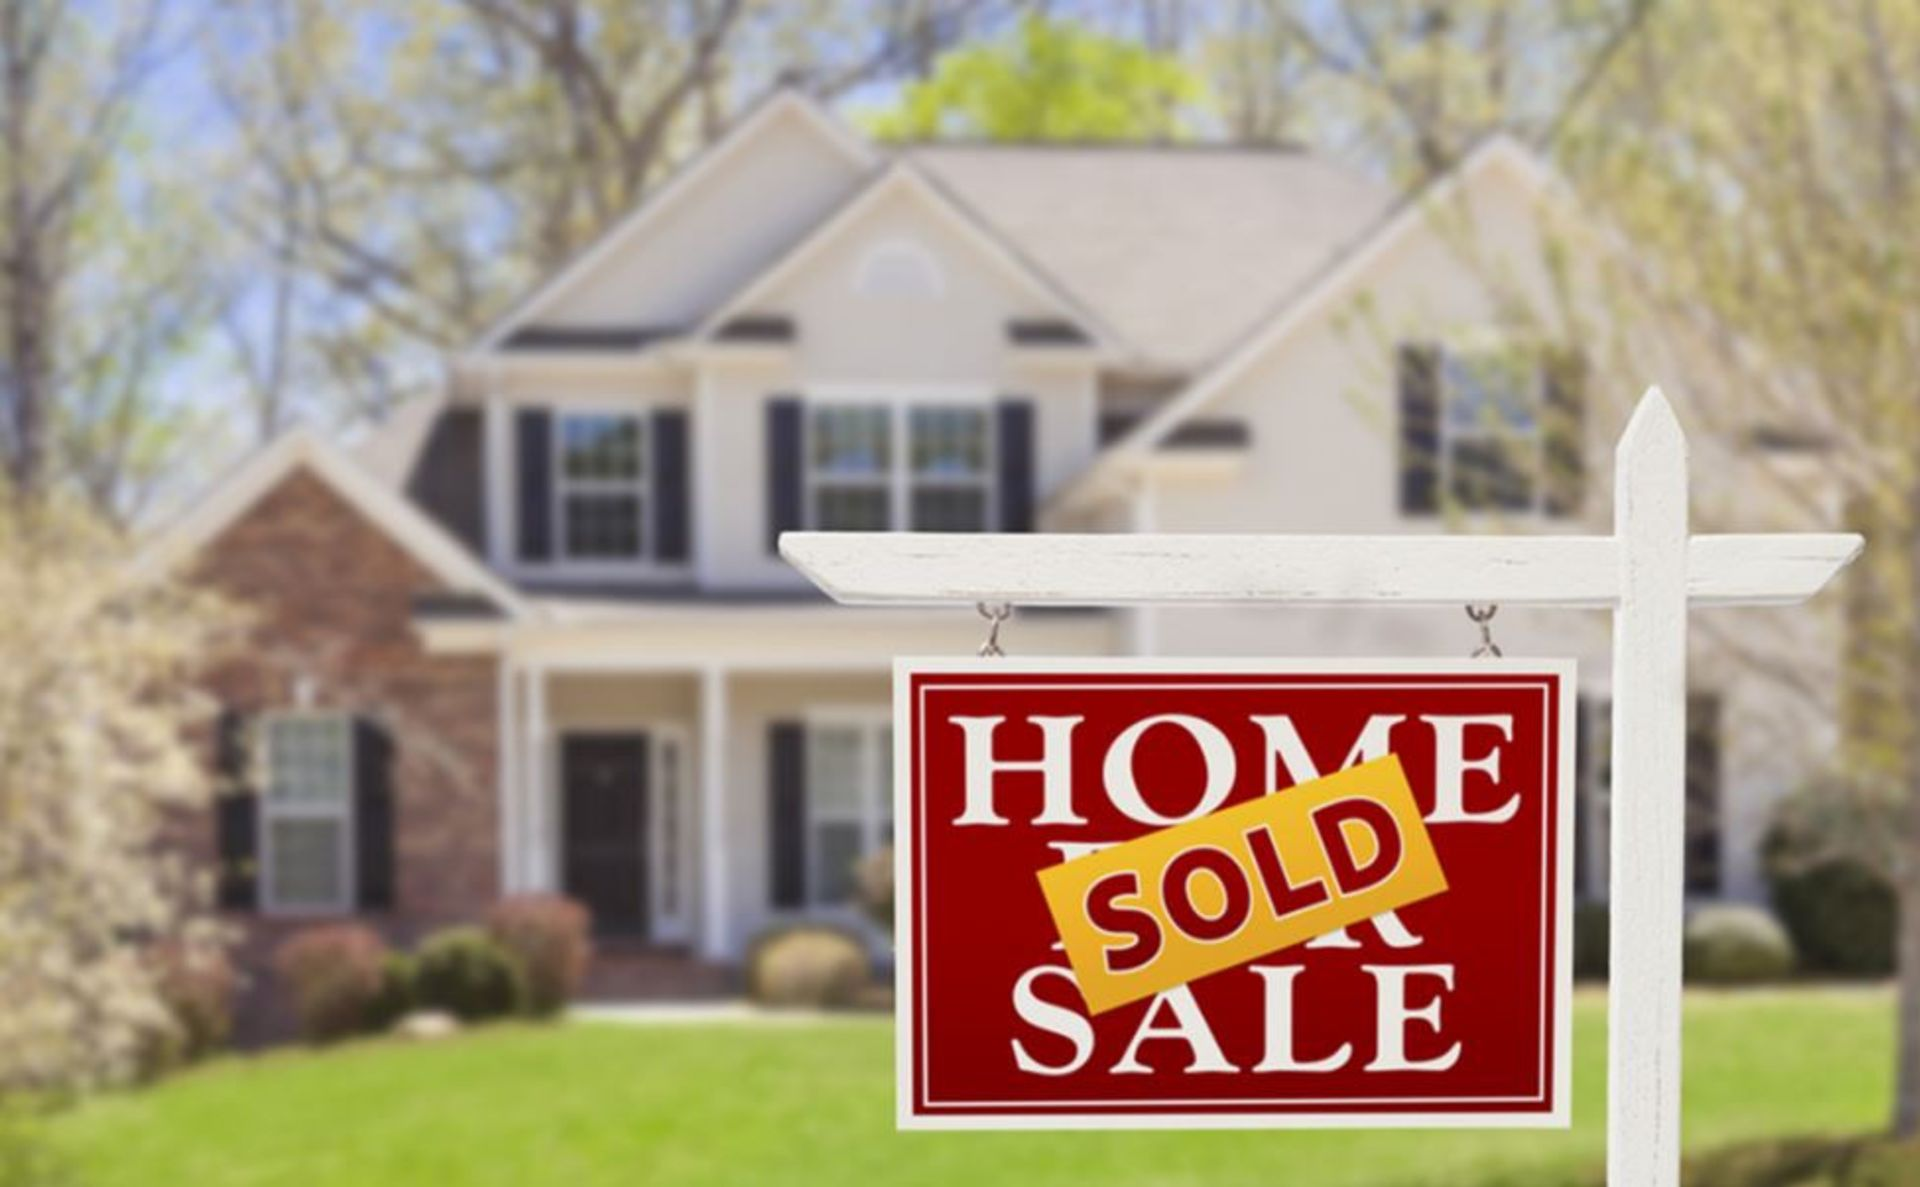 Prepare Home to Sell for Spring